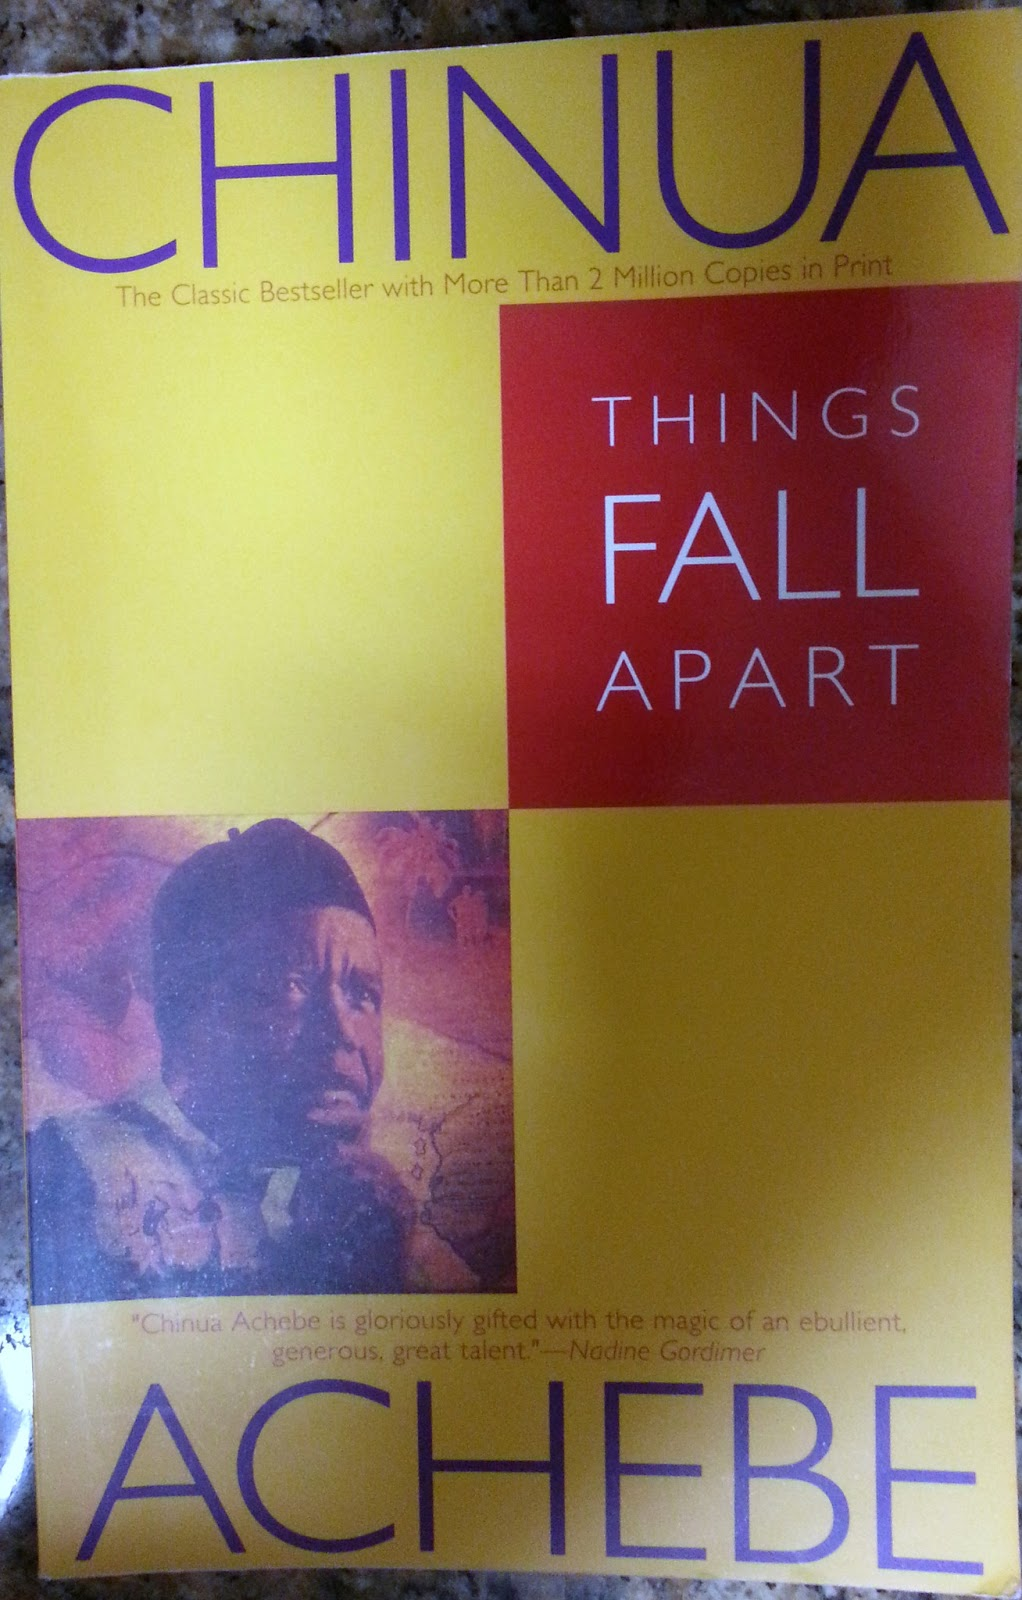 chinua achebe from the book thingsfall See all books authored by chinua achebe, including things fall apart, and no longer at ease, and more on thriftbookscom  and a children's book achebe was the .